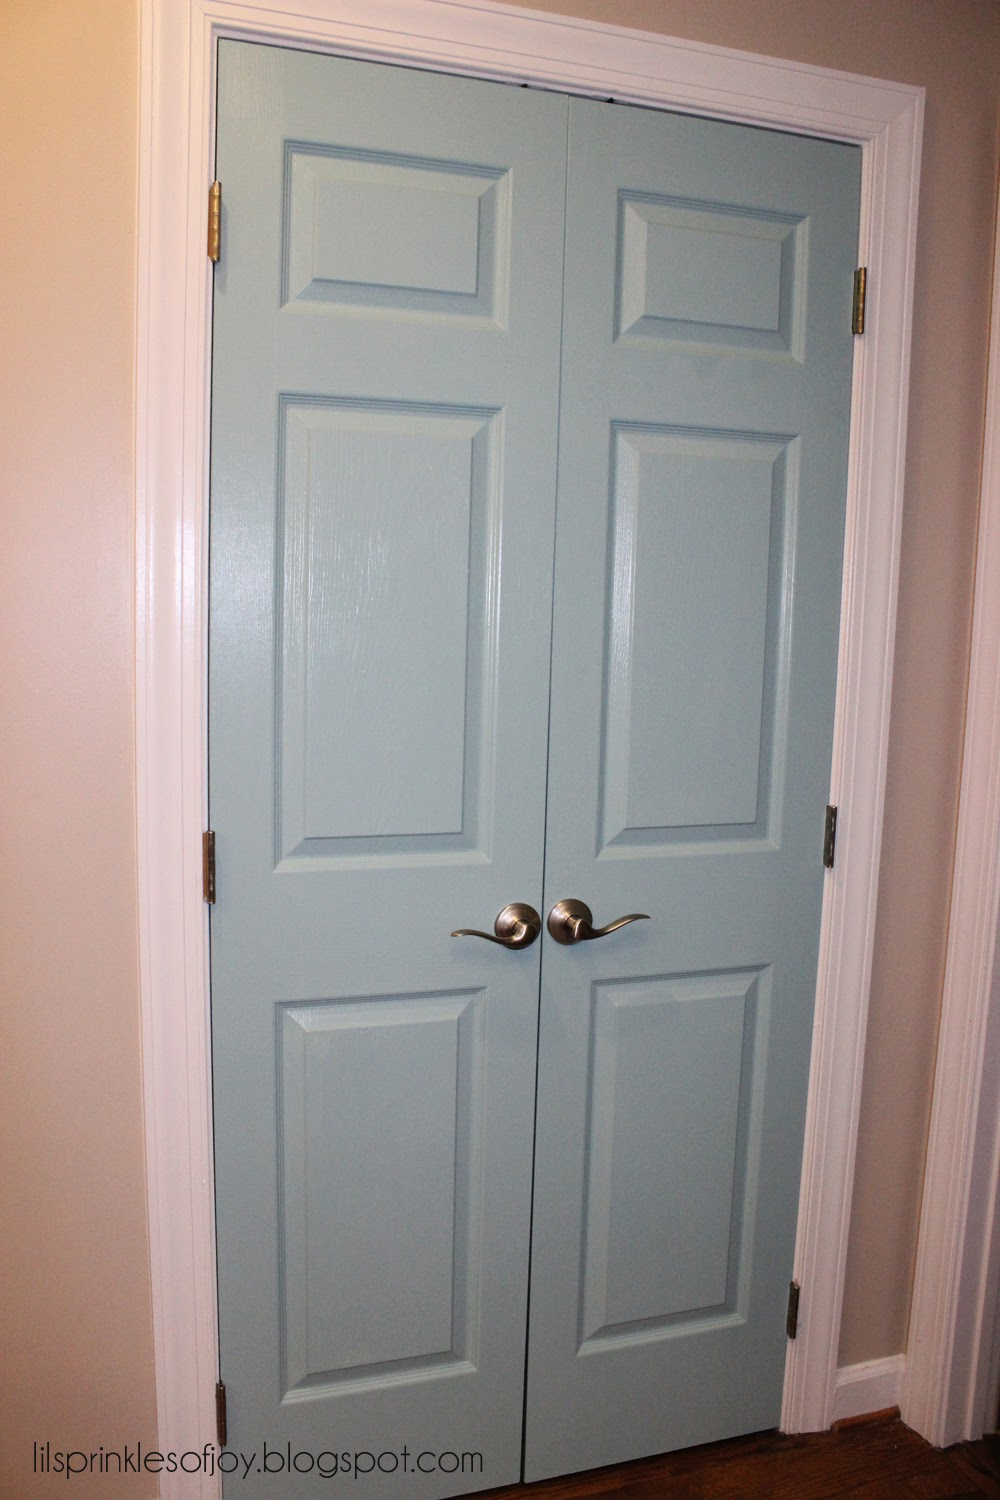 Lil' Sprinkles of Joy: Painted Pantry Door